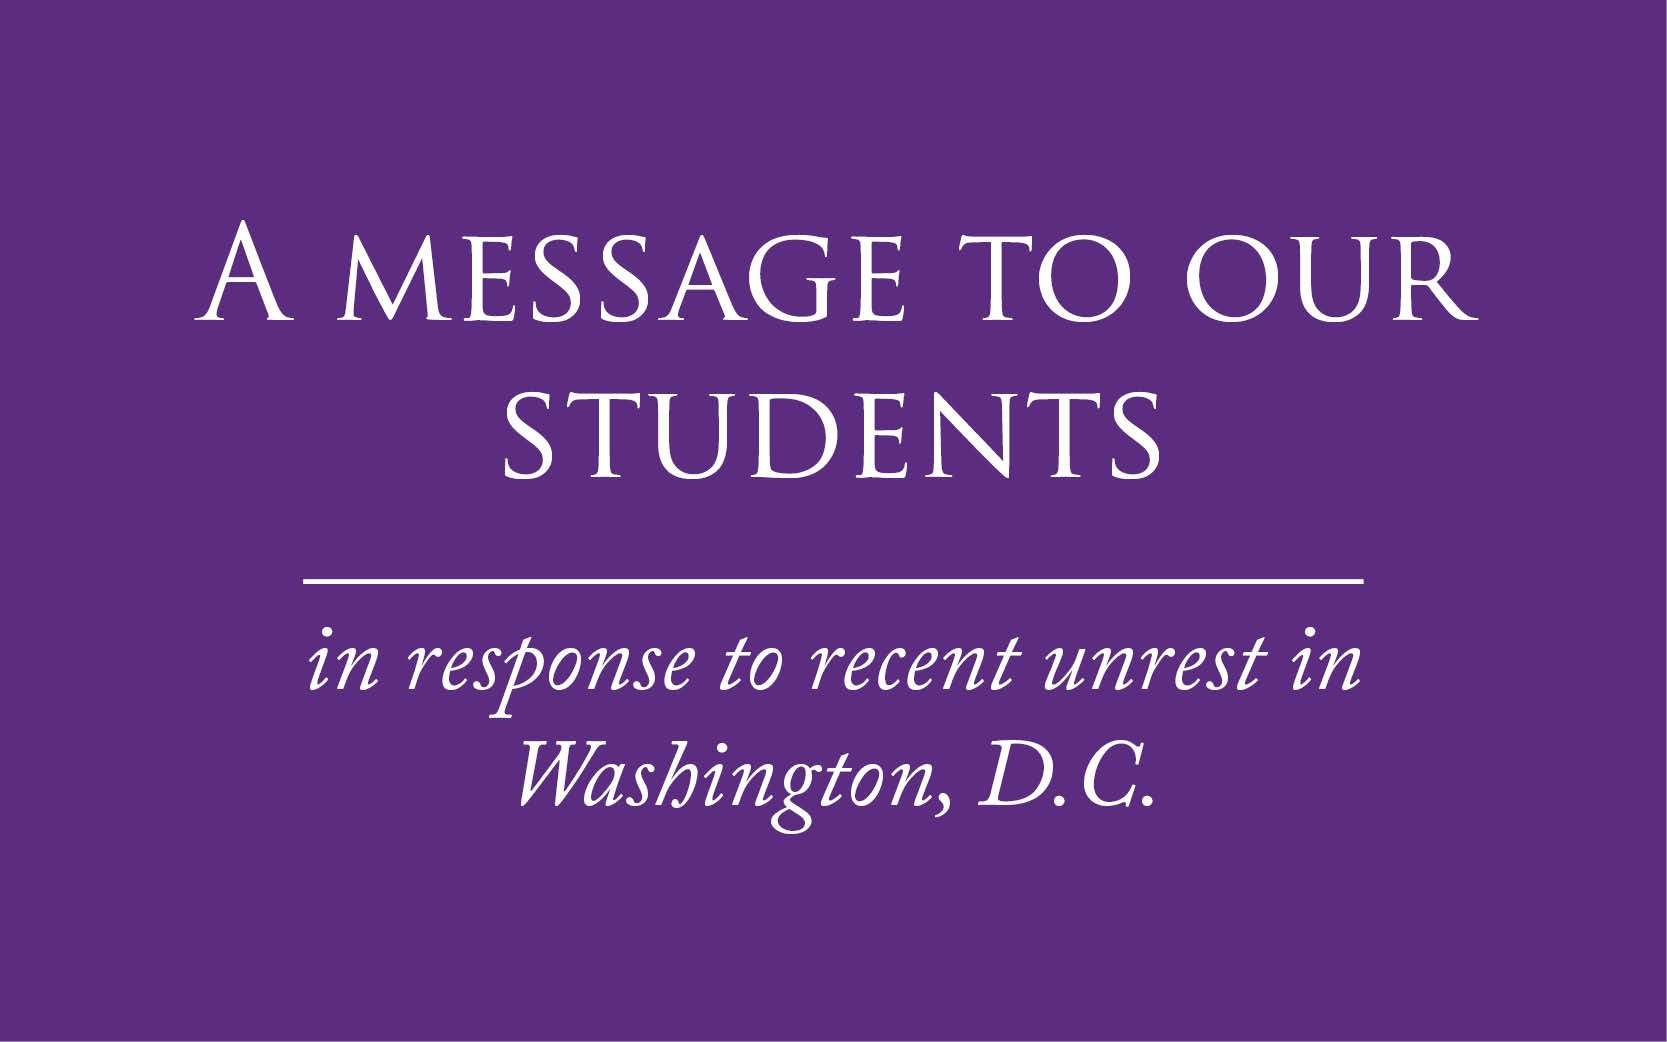 Message to our students